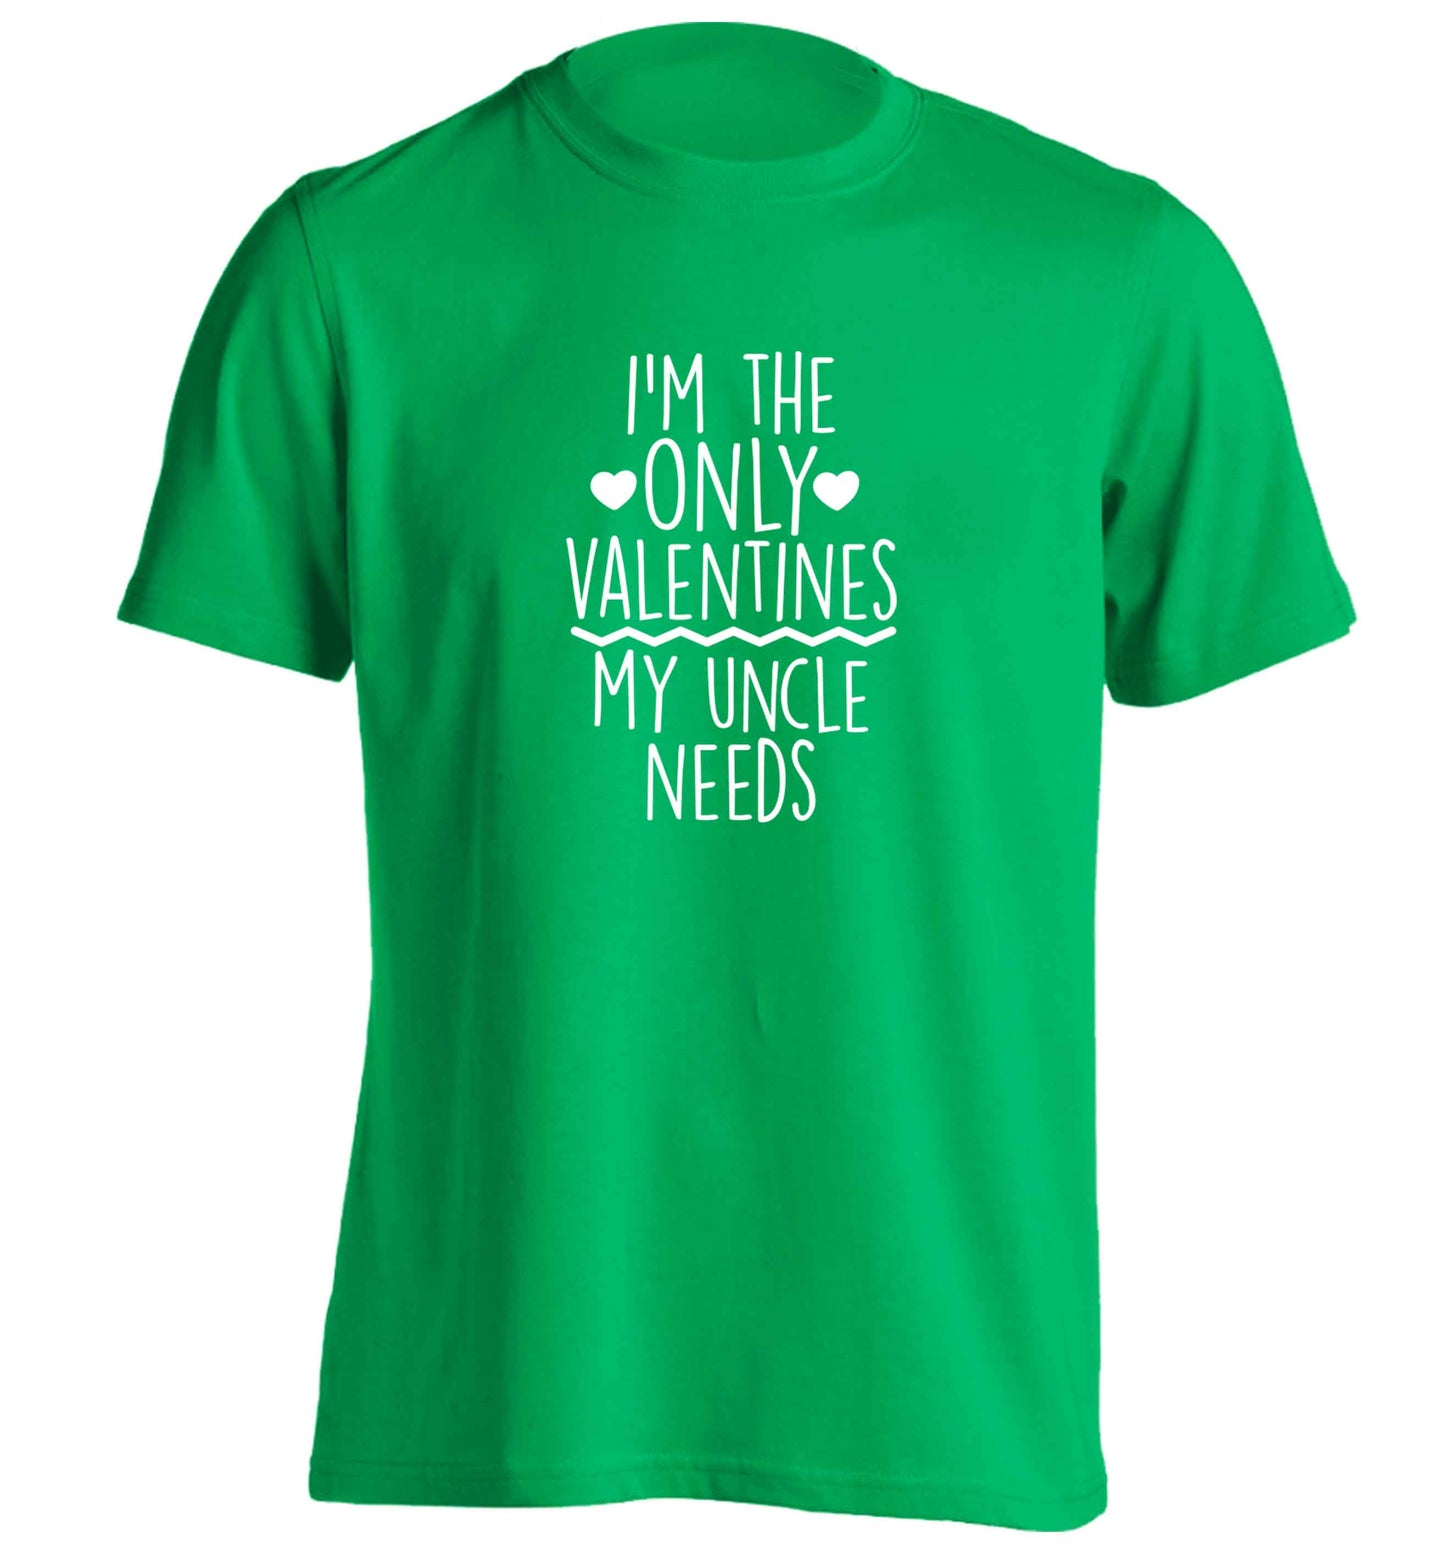 I'm the only valentines my uncle needs adults unisex green Tshirt 2XL